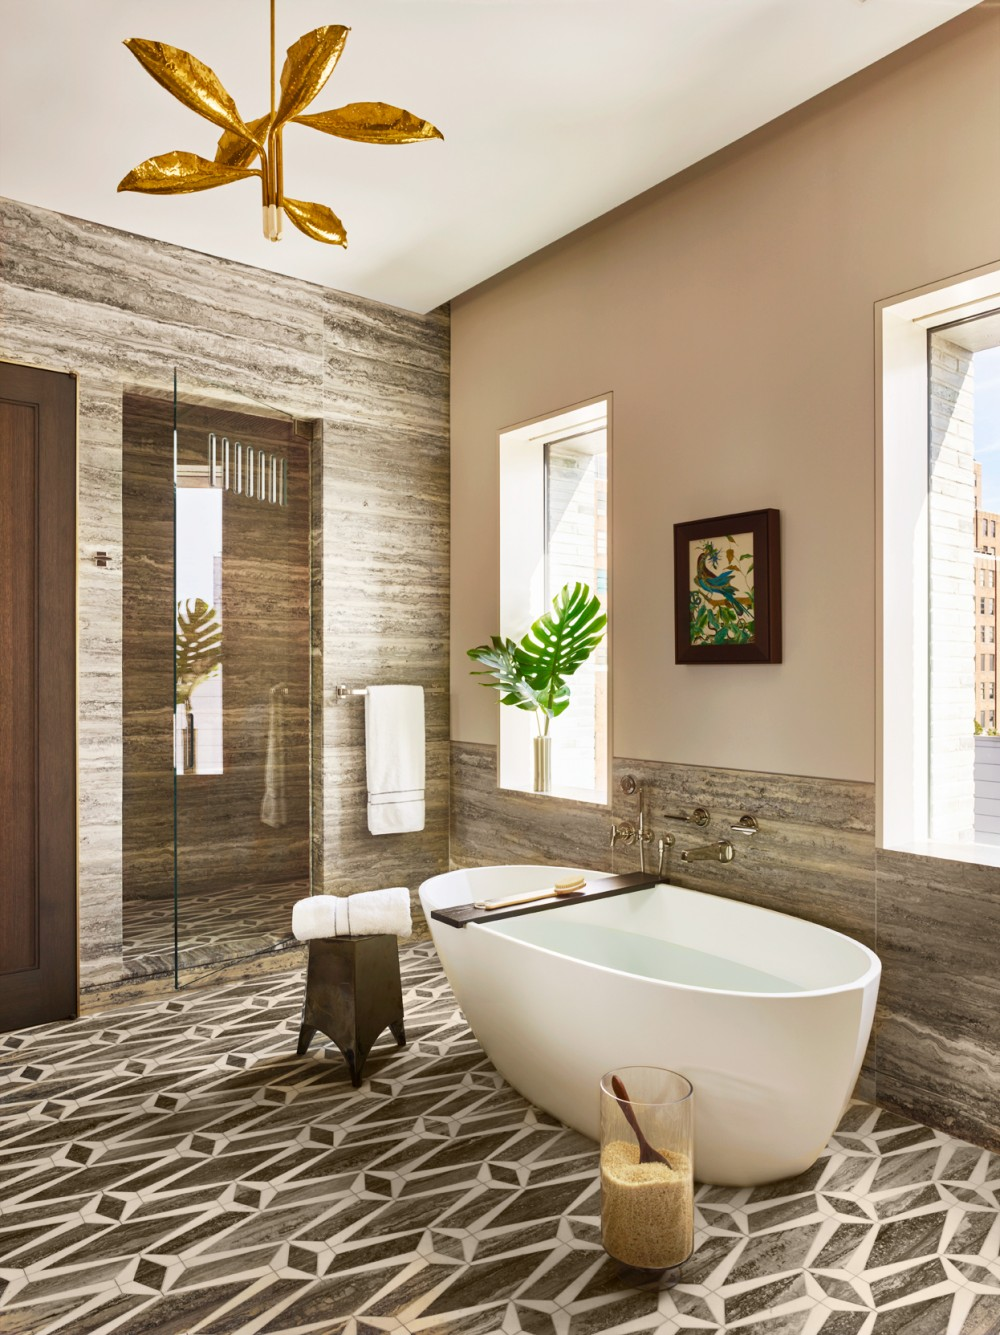 Bathroom By Dufner Heighes By Architectural Digest Ad Designfile Home Decorating Photos